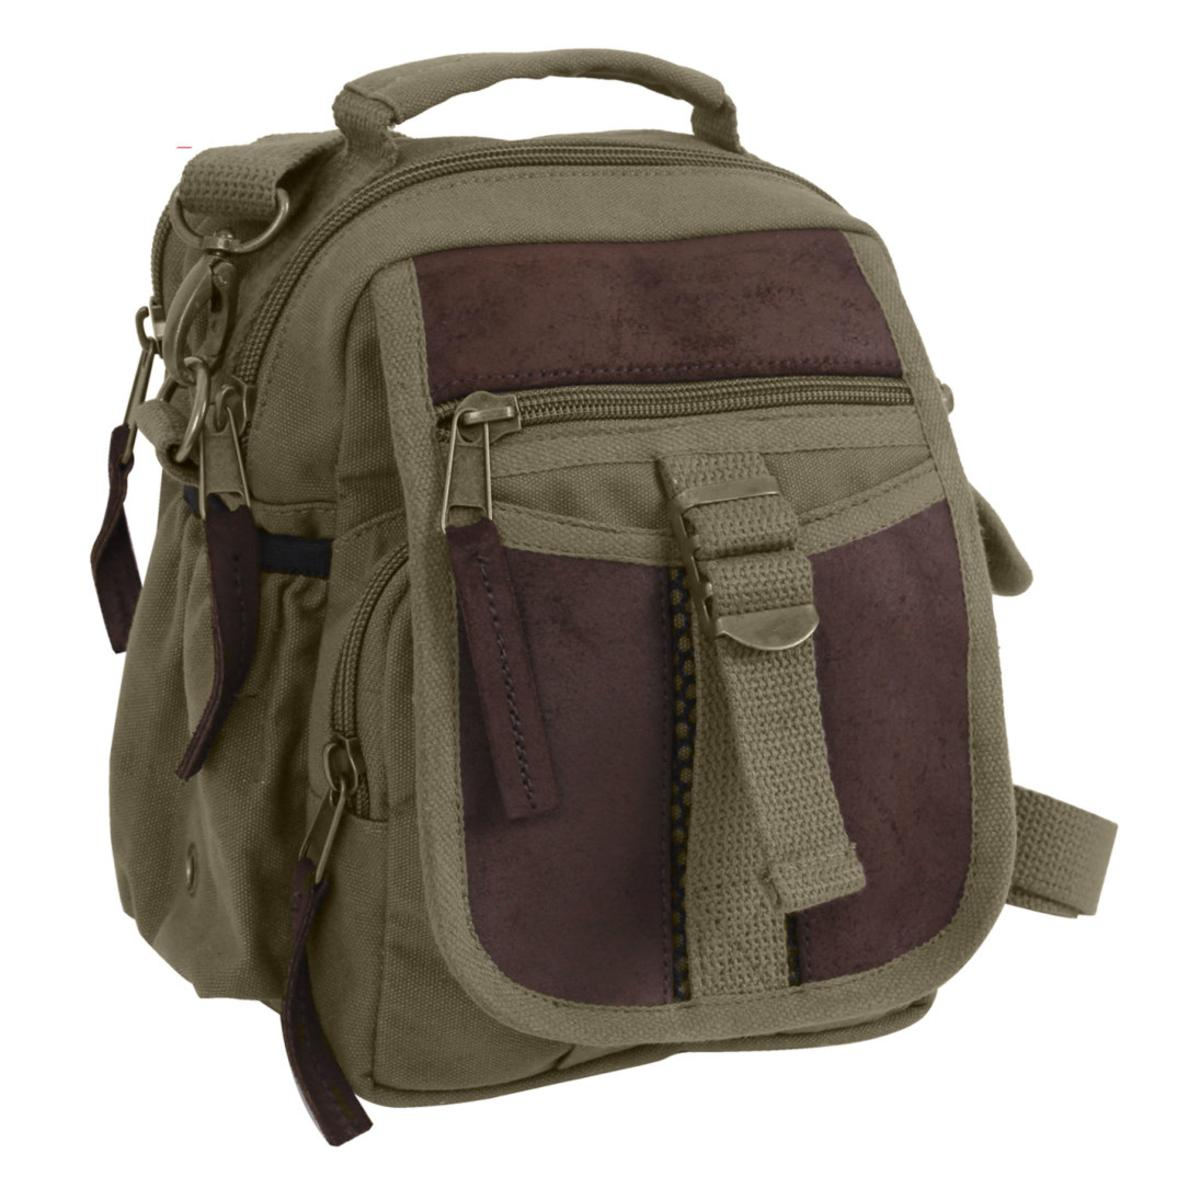 Rothco Canvas and Leather Travel Shoulder Bag w Removable Strap, Belt Loop by Rothco